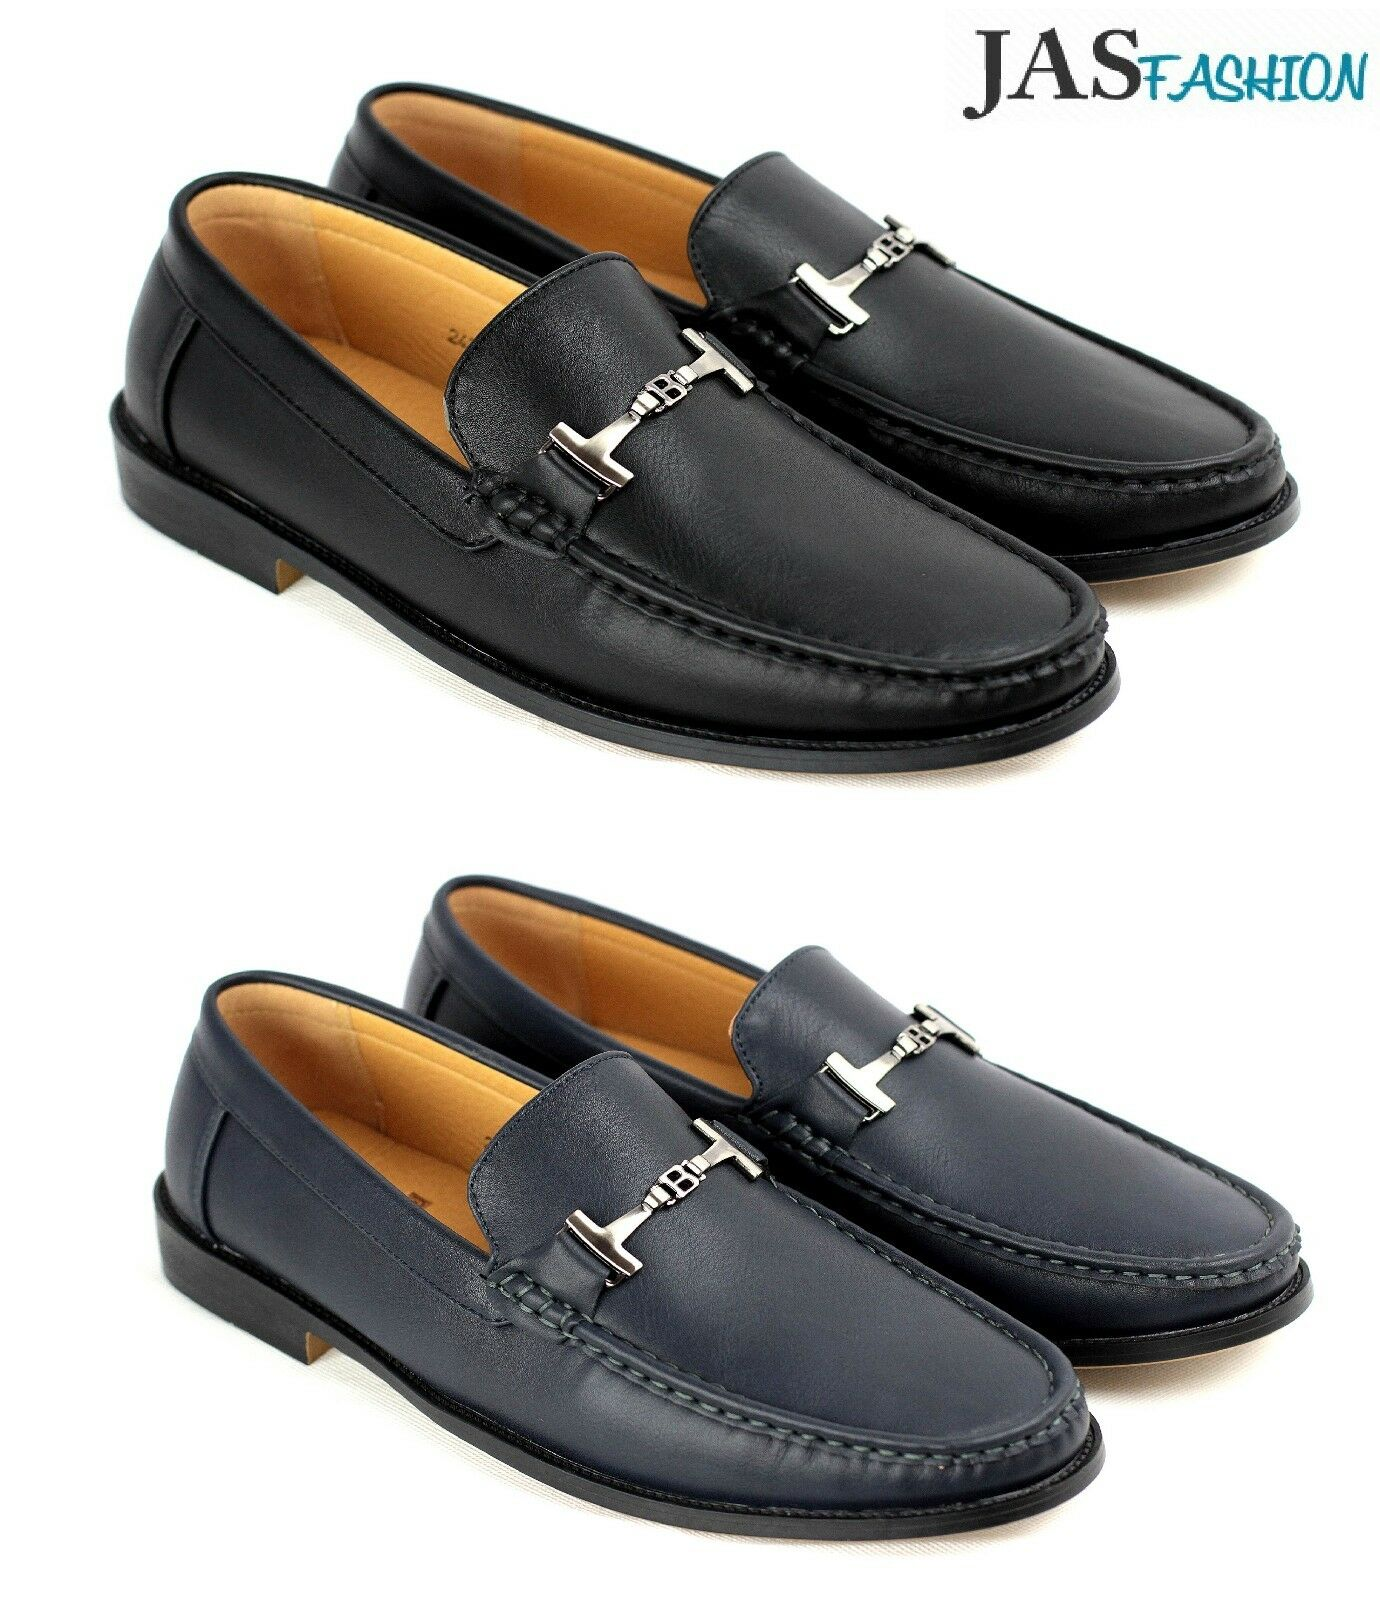 New Mens Slip on Loafer Casual Driving  Moccasin Synthetic Leather Smart Shoe UK